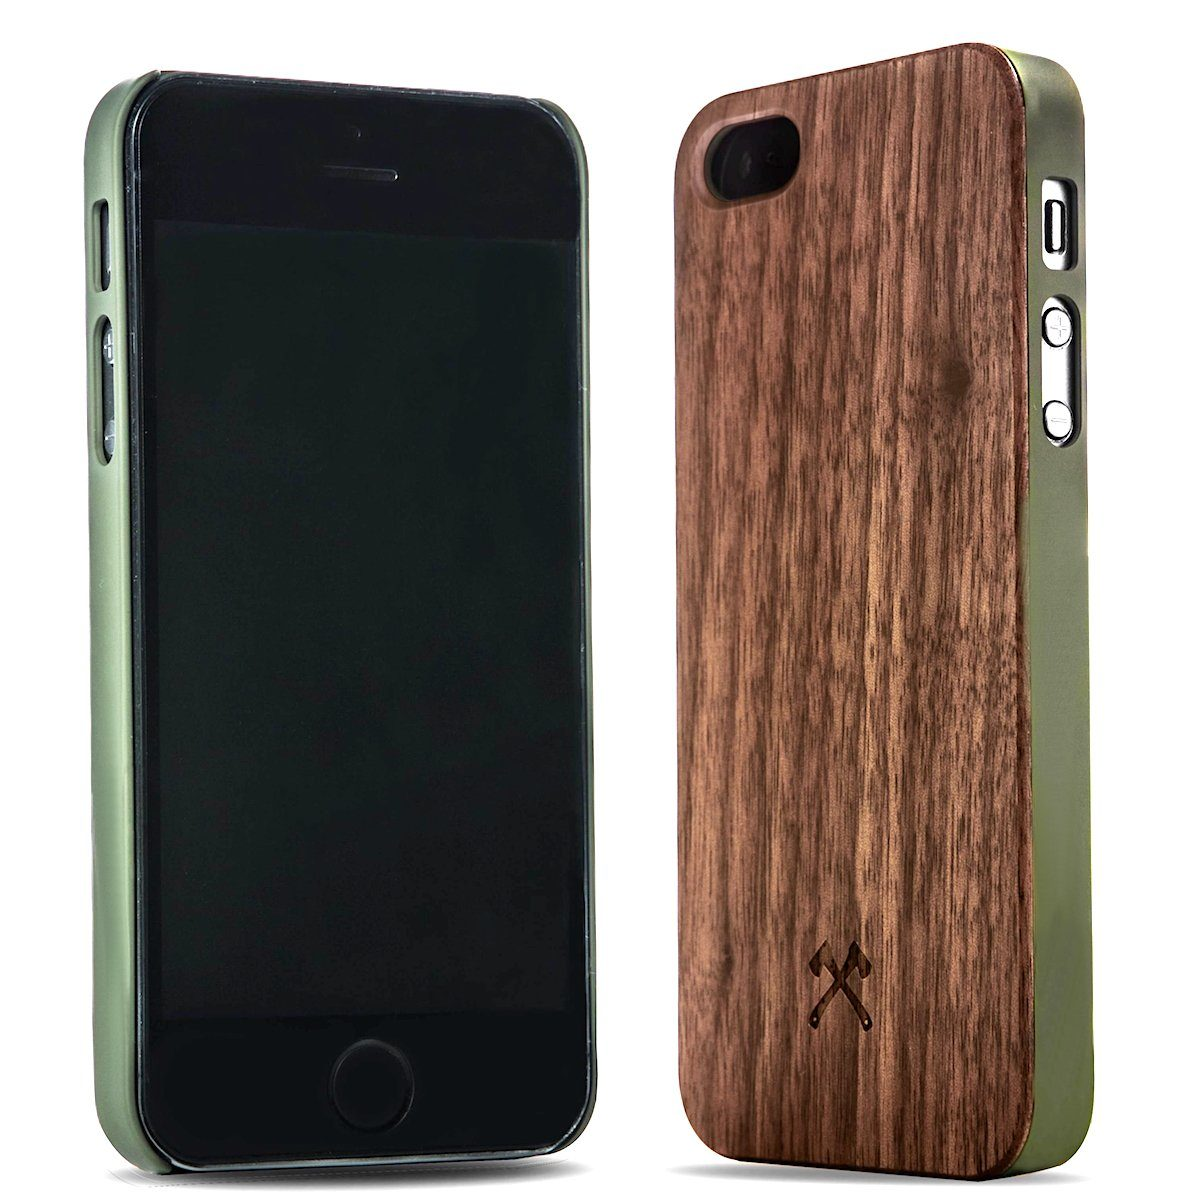 Woodcessories EcoCase - iPhone SE / 5 / 5s Echtholz Case - Connor